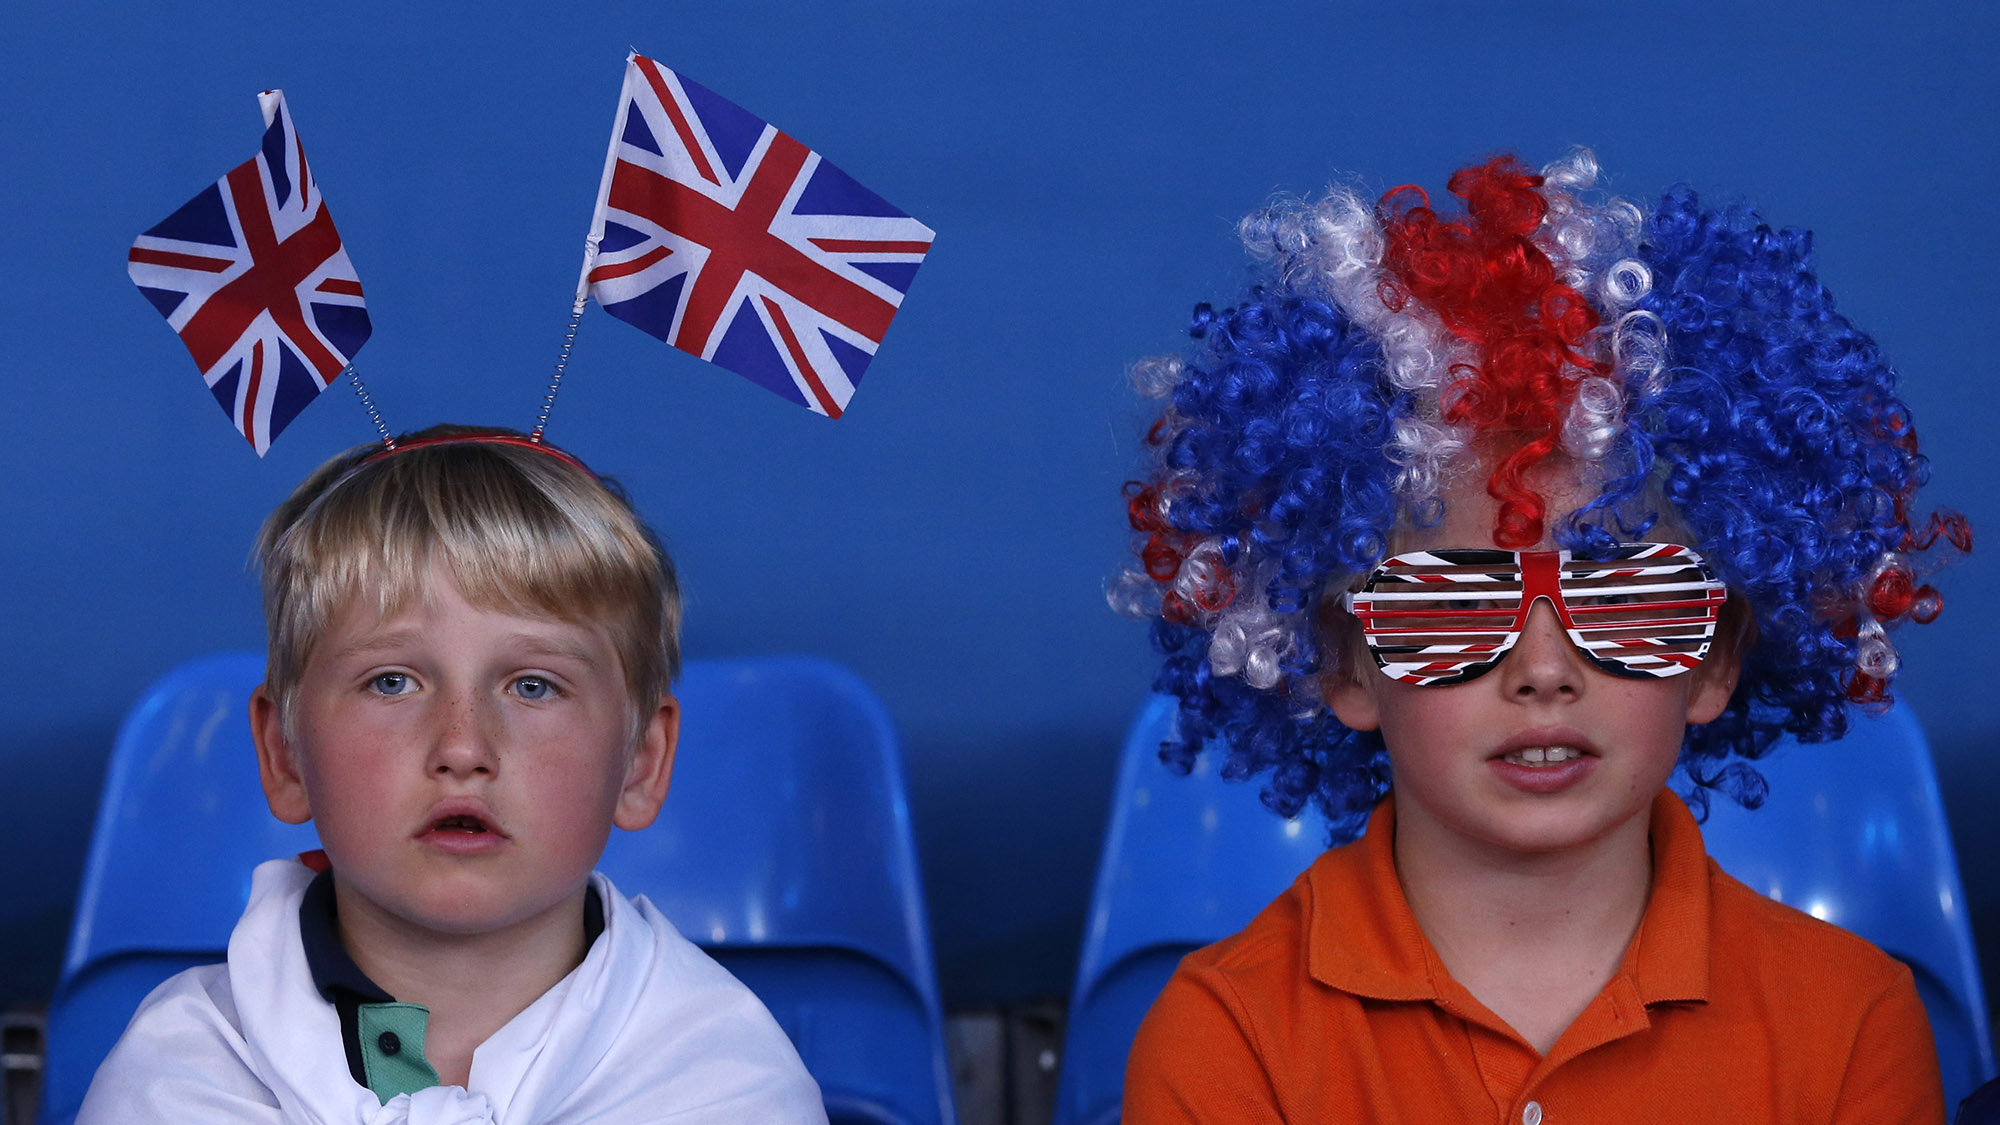 Young spectators watch the men's -81kg and women's 63kg judo competition at the London 2012 Olympic Games July 31, 2012.               REUTERS/Kim Kyung-Hoon (BRITAIN  - Tags: SPORT OLYMPICS SPORT JUDO) - RTR35QC3